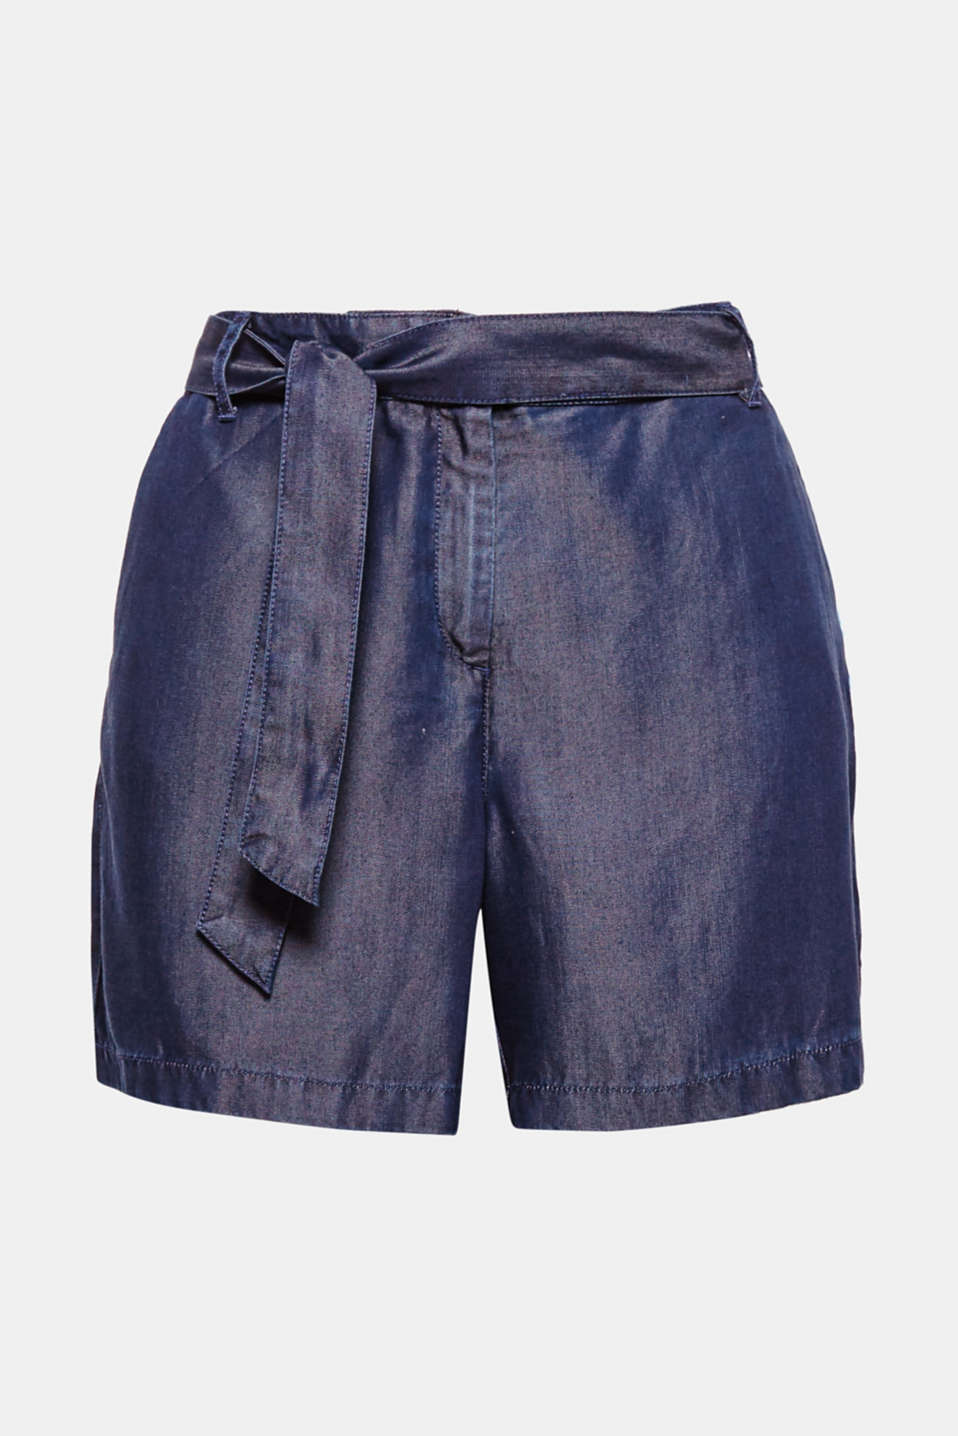 Chic or casual? These lightweight shorts made of flowing lyocell in a dark denim look bridges the gap between the two!